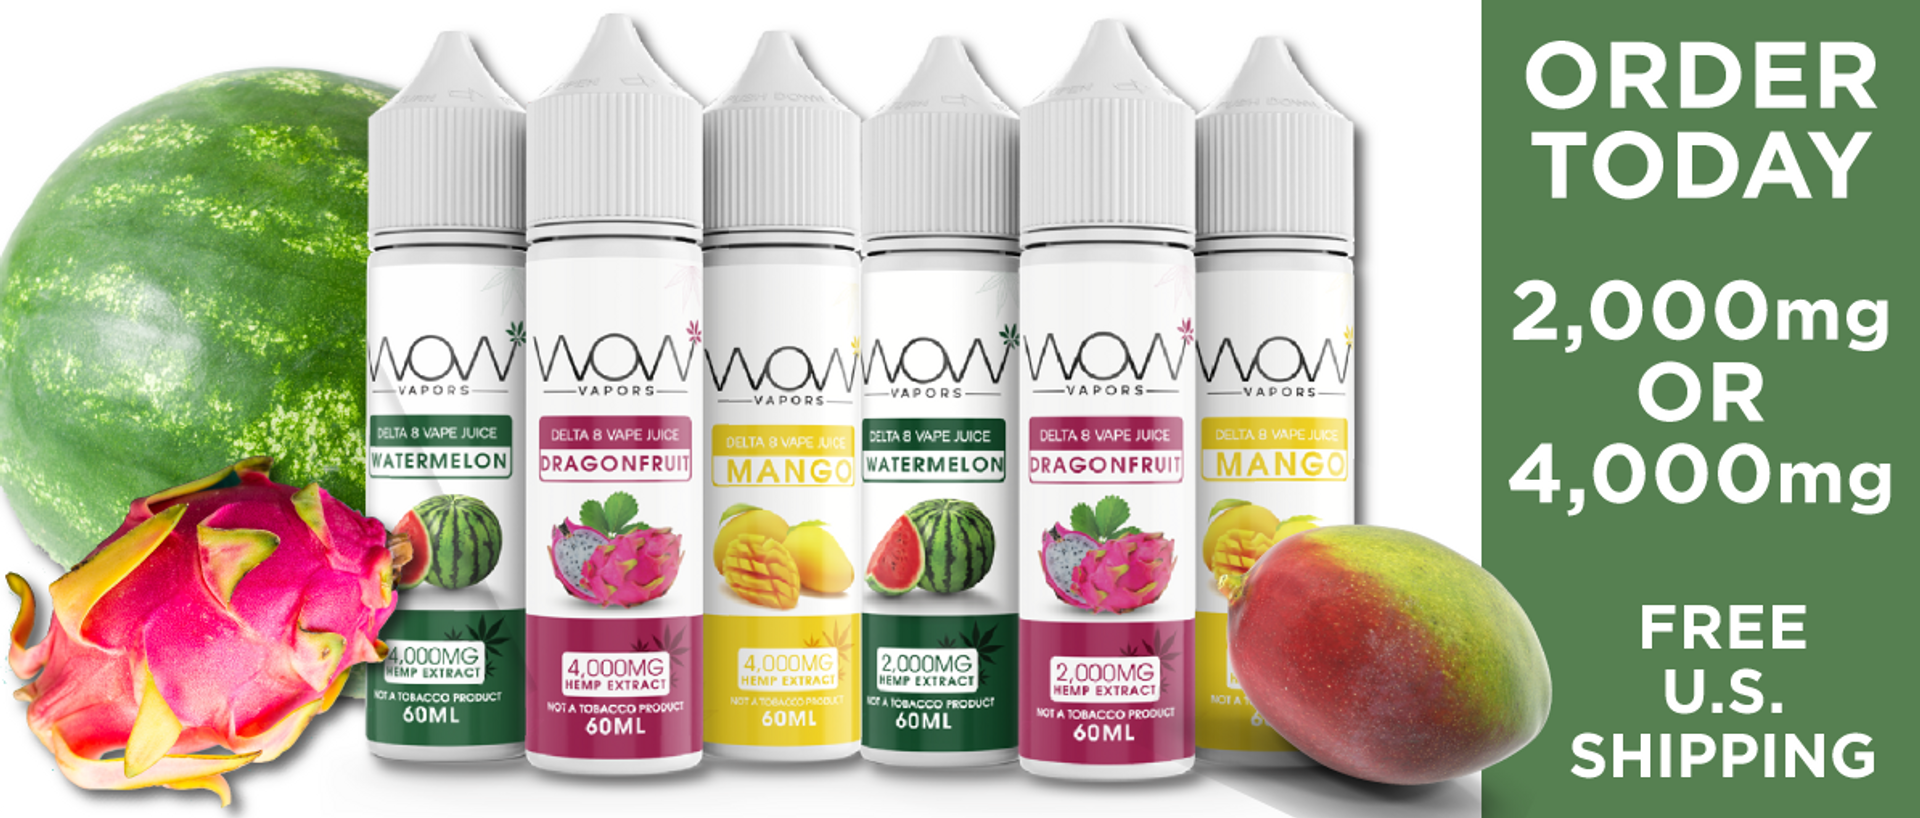 Delta 8 Vape Juice | 2,000mg - 4,000mg 60ml  is offered in three mouth-watering flavors: Watermelon, Dragon Fruit and Mango. Enjoy your favorite flavors with two powerful strengths, 2,000mg and 4,000mg. Try some today, you will love the great taste and st